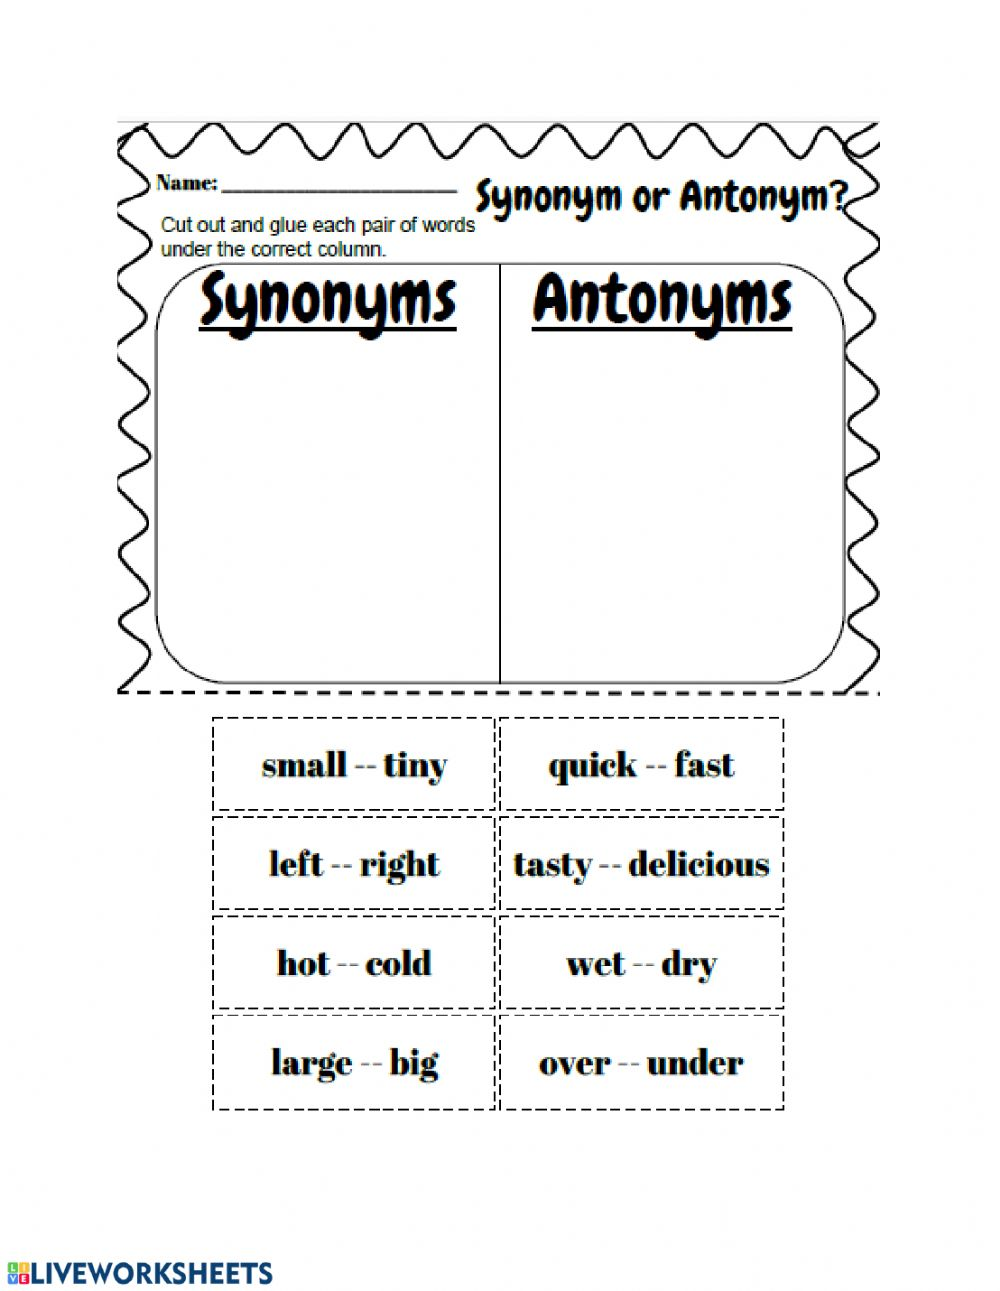 hight resolution of Synonyms and Antonyms worksheet